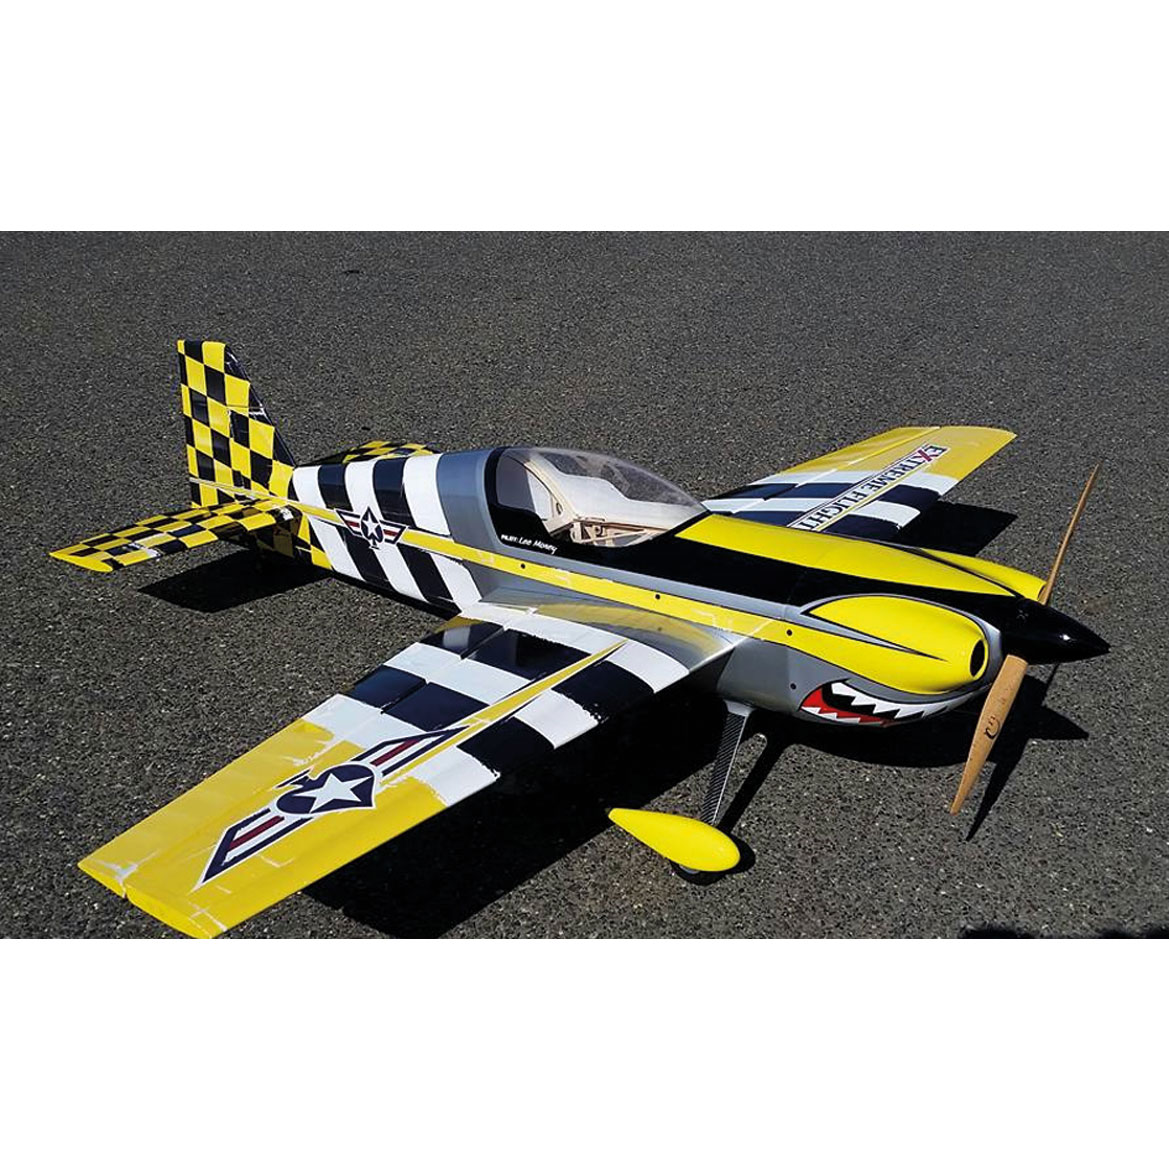 "EXTREMEFLIGHT-RC MXS EXP 76""(83"") ELECTRIC ""HEAVY METAL"" DESIGN ARF"